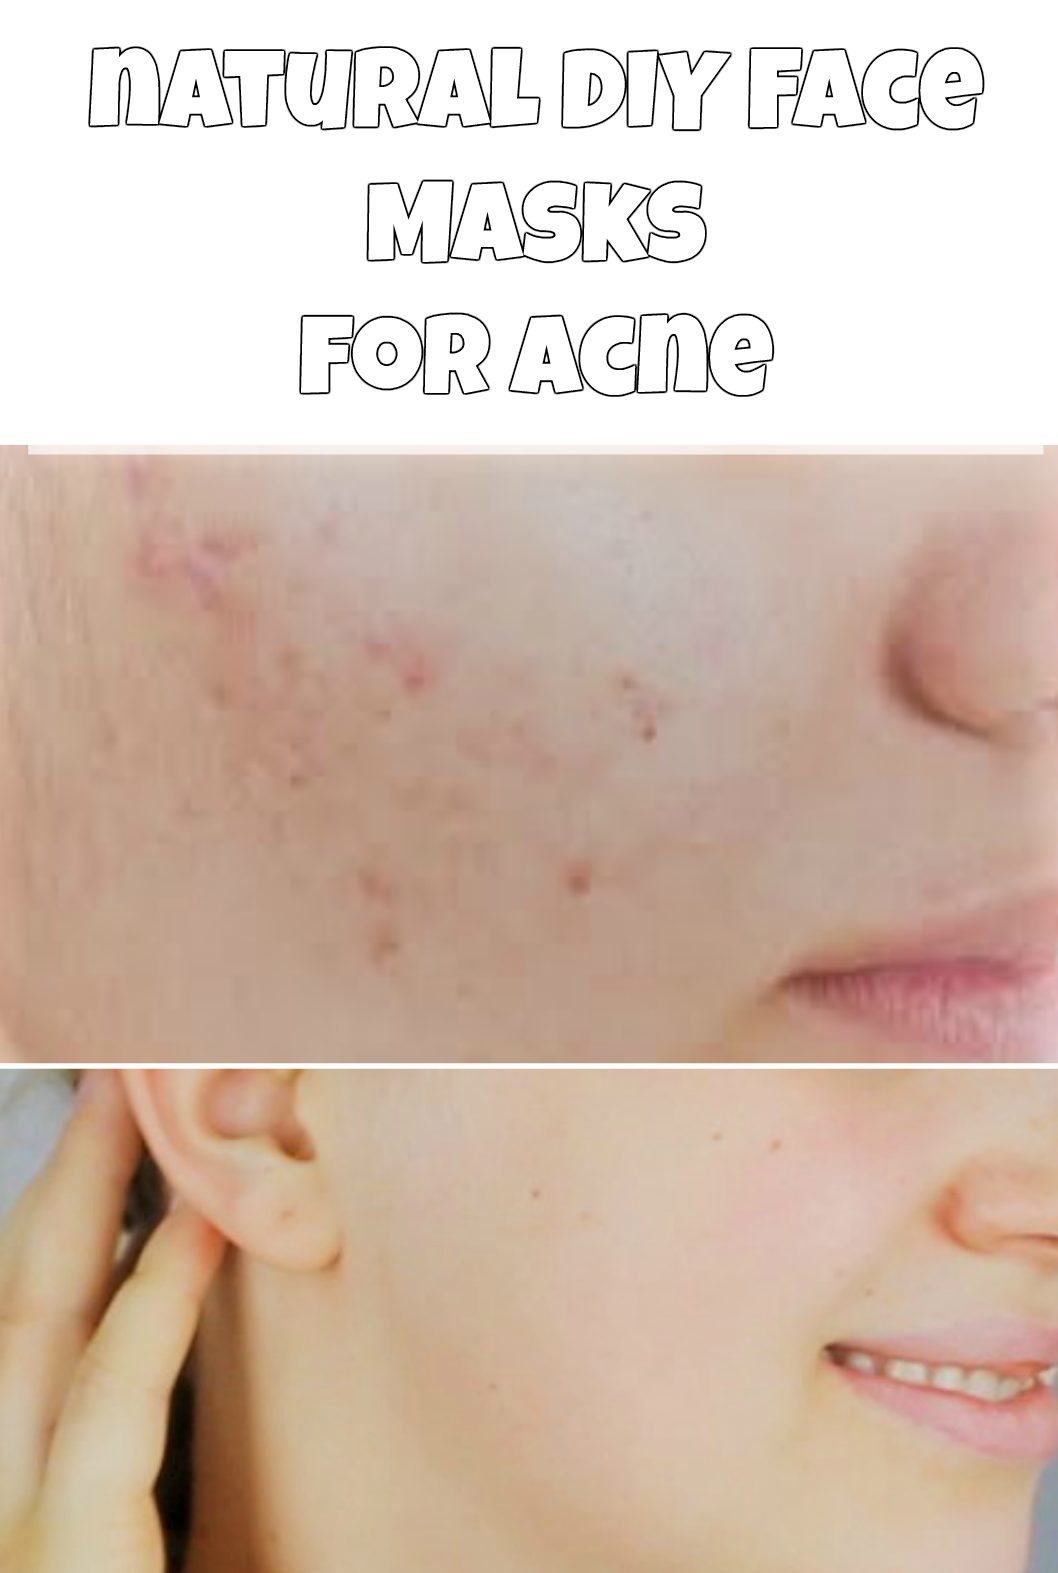 Natural diy face masks for acne diy do it yourself homemade natural diy face masks for acne diy do it yourself homemade face masks acne acne prone oily skin dry skin no more acne at home get rid of acne solutioingenieria